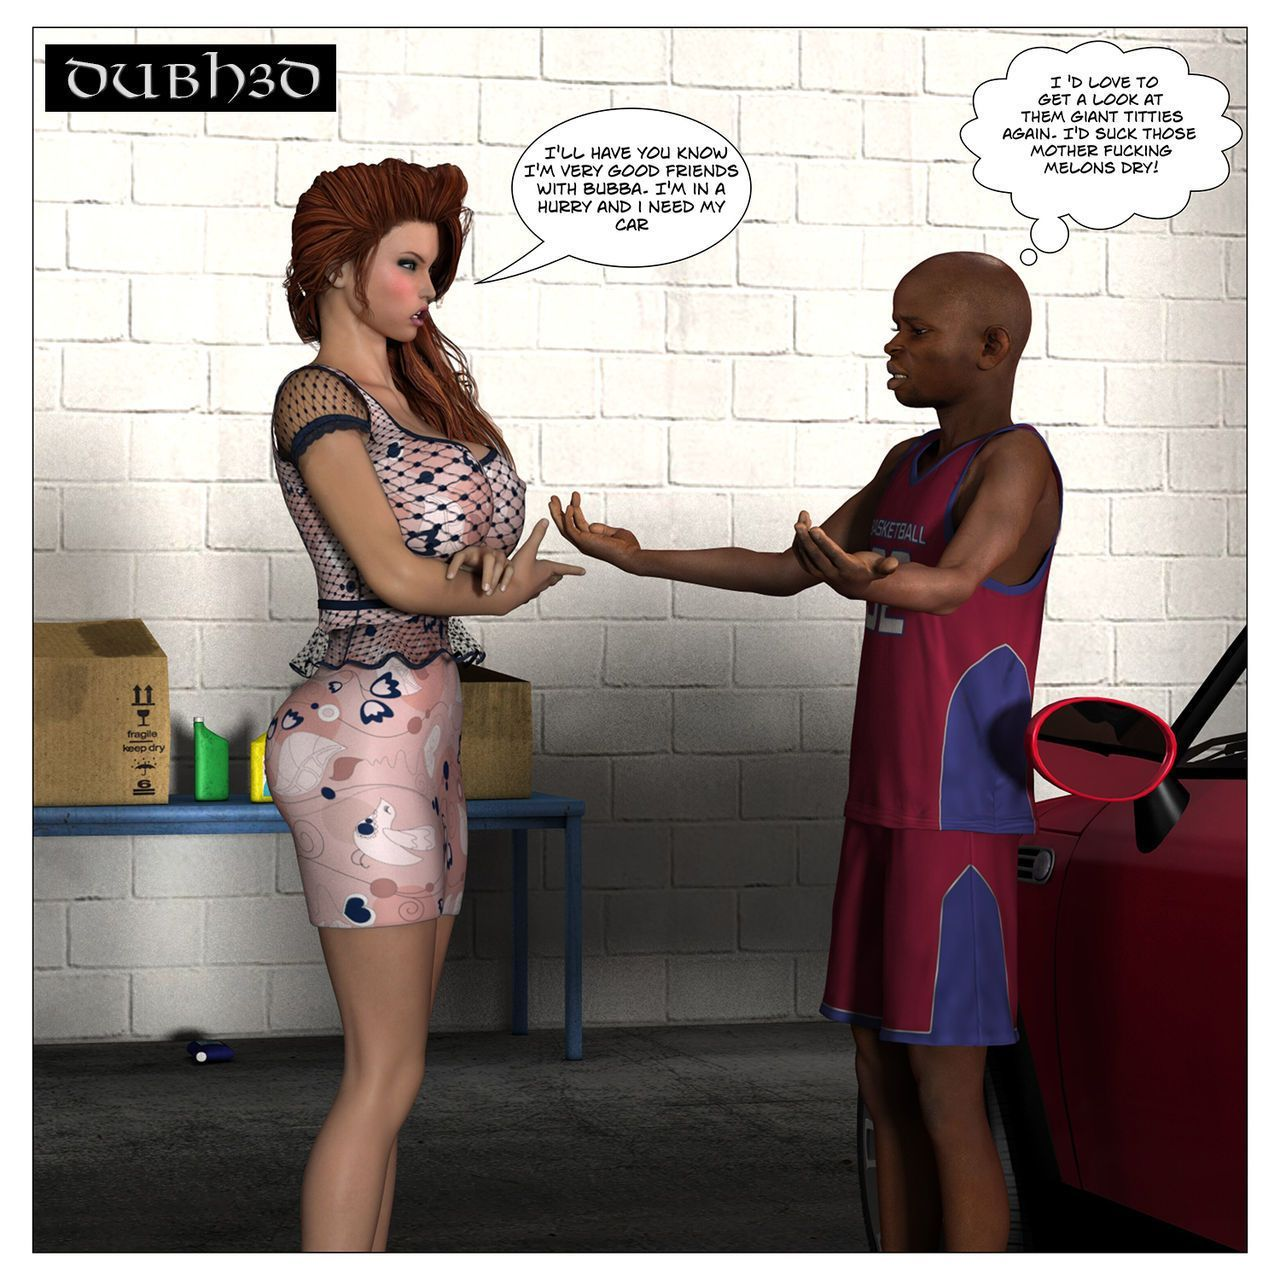 Dubh3d 3d porn RED: CAR TROUBLE Chapter 2 - The Pickup